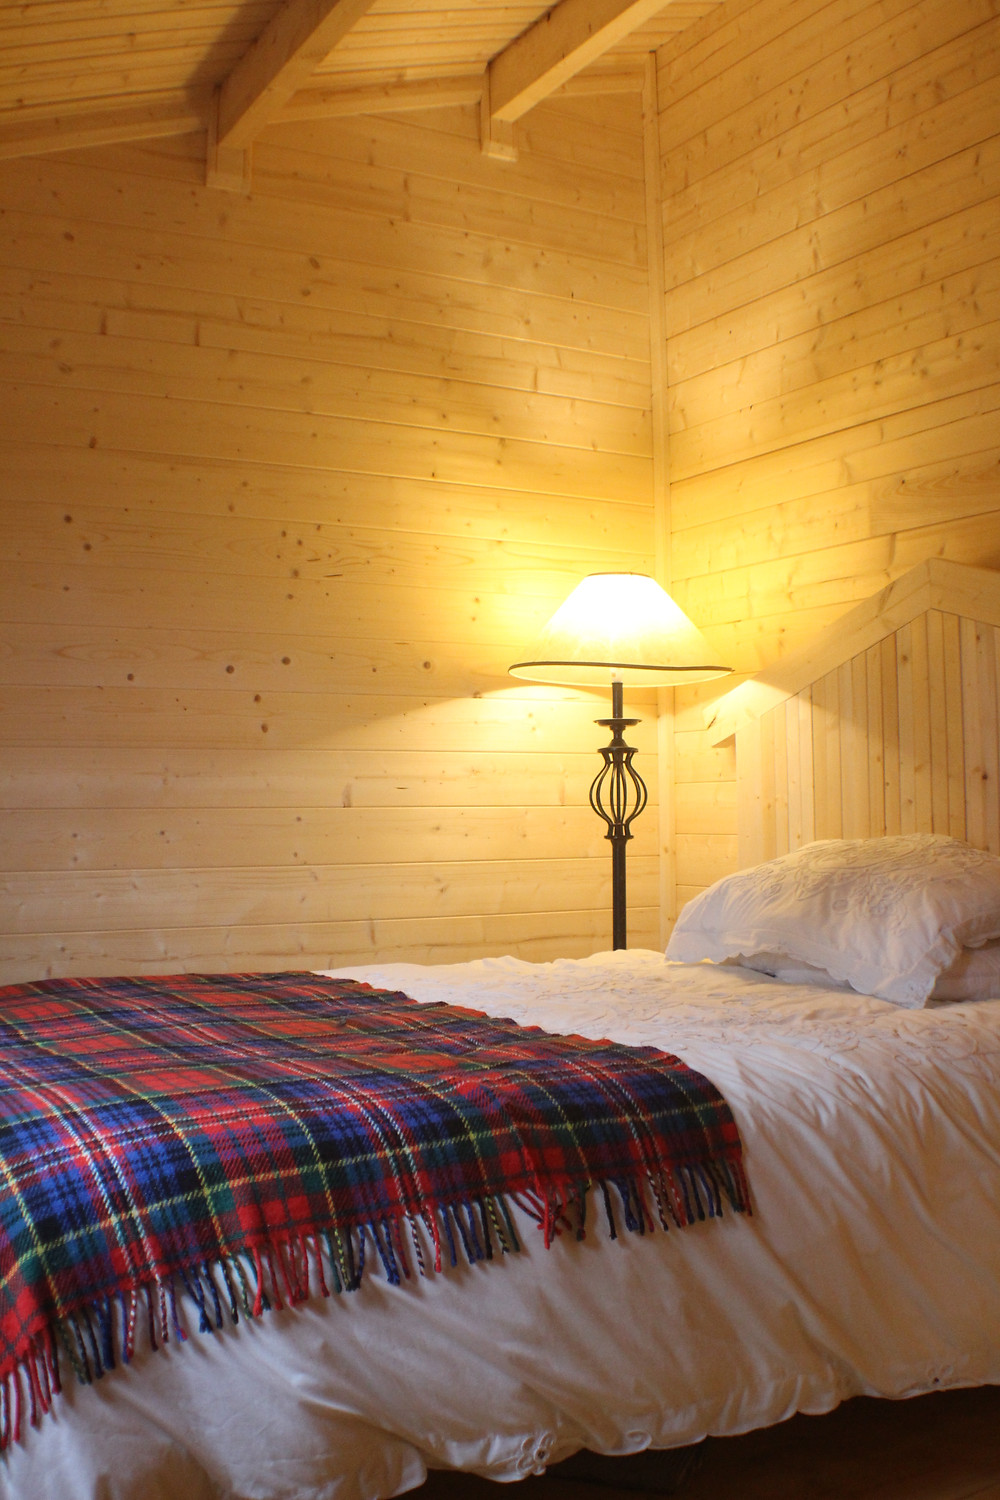 Log cabin bedroom with lamp, homemade bed and timber walls